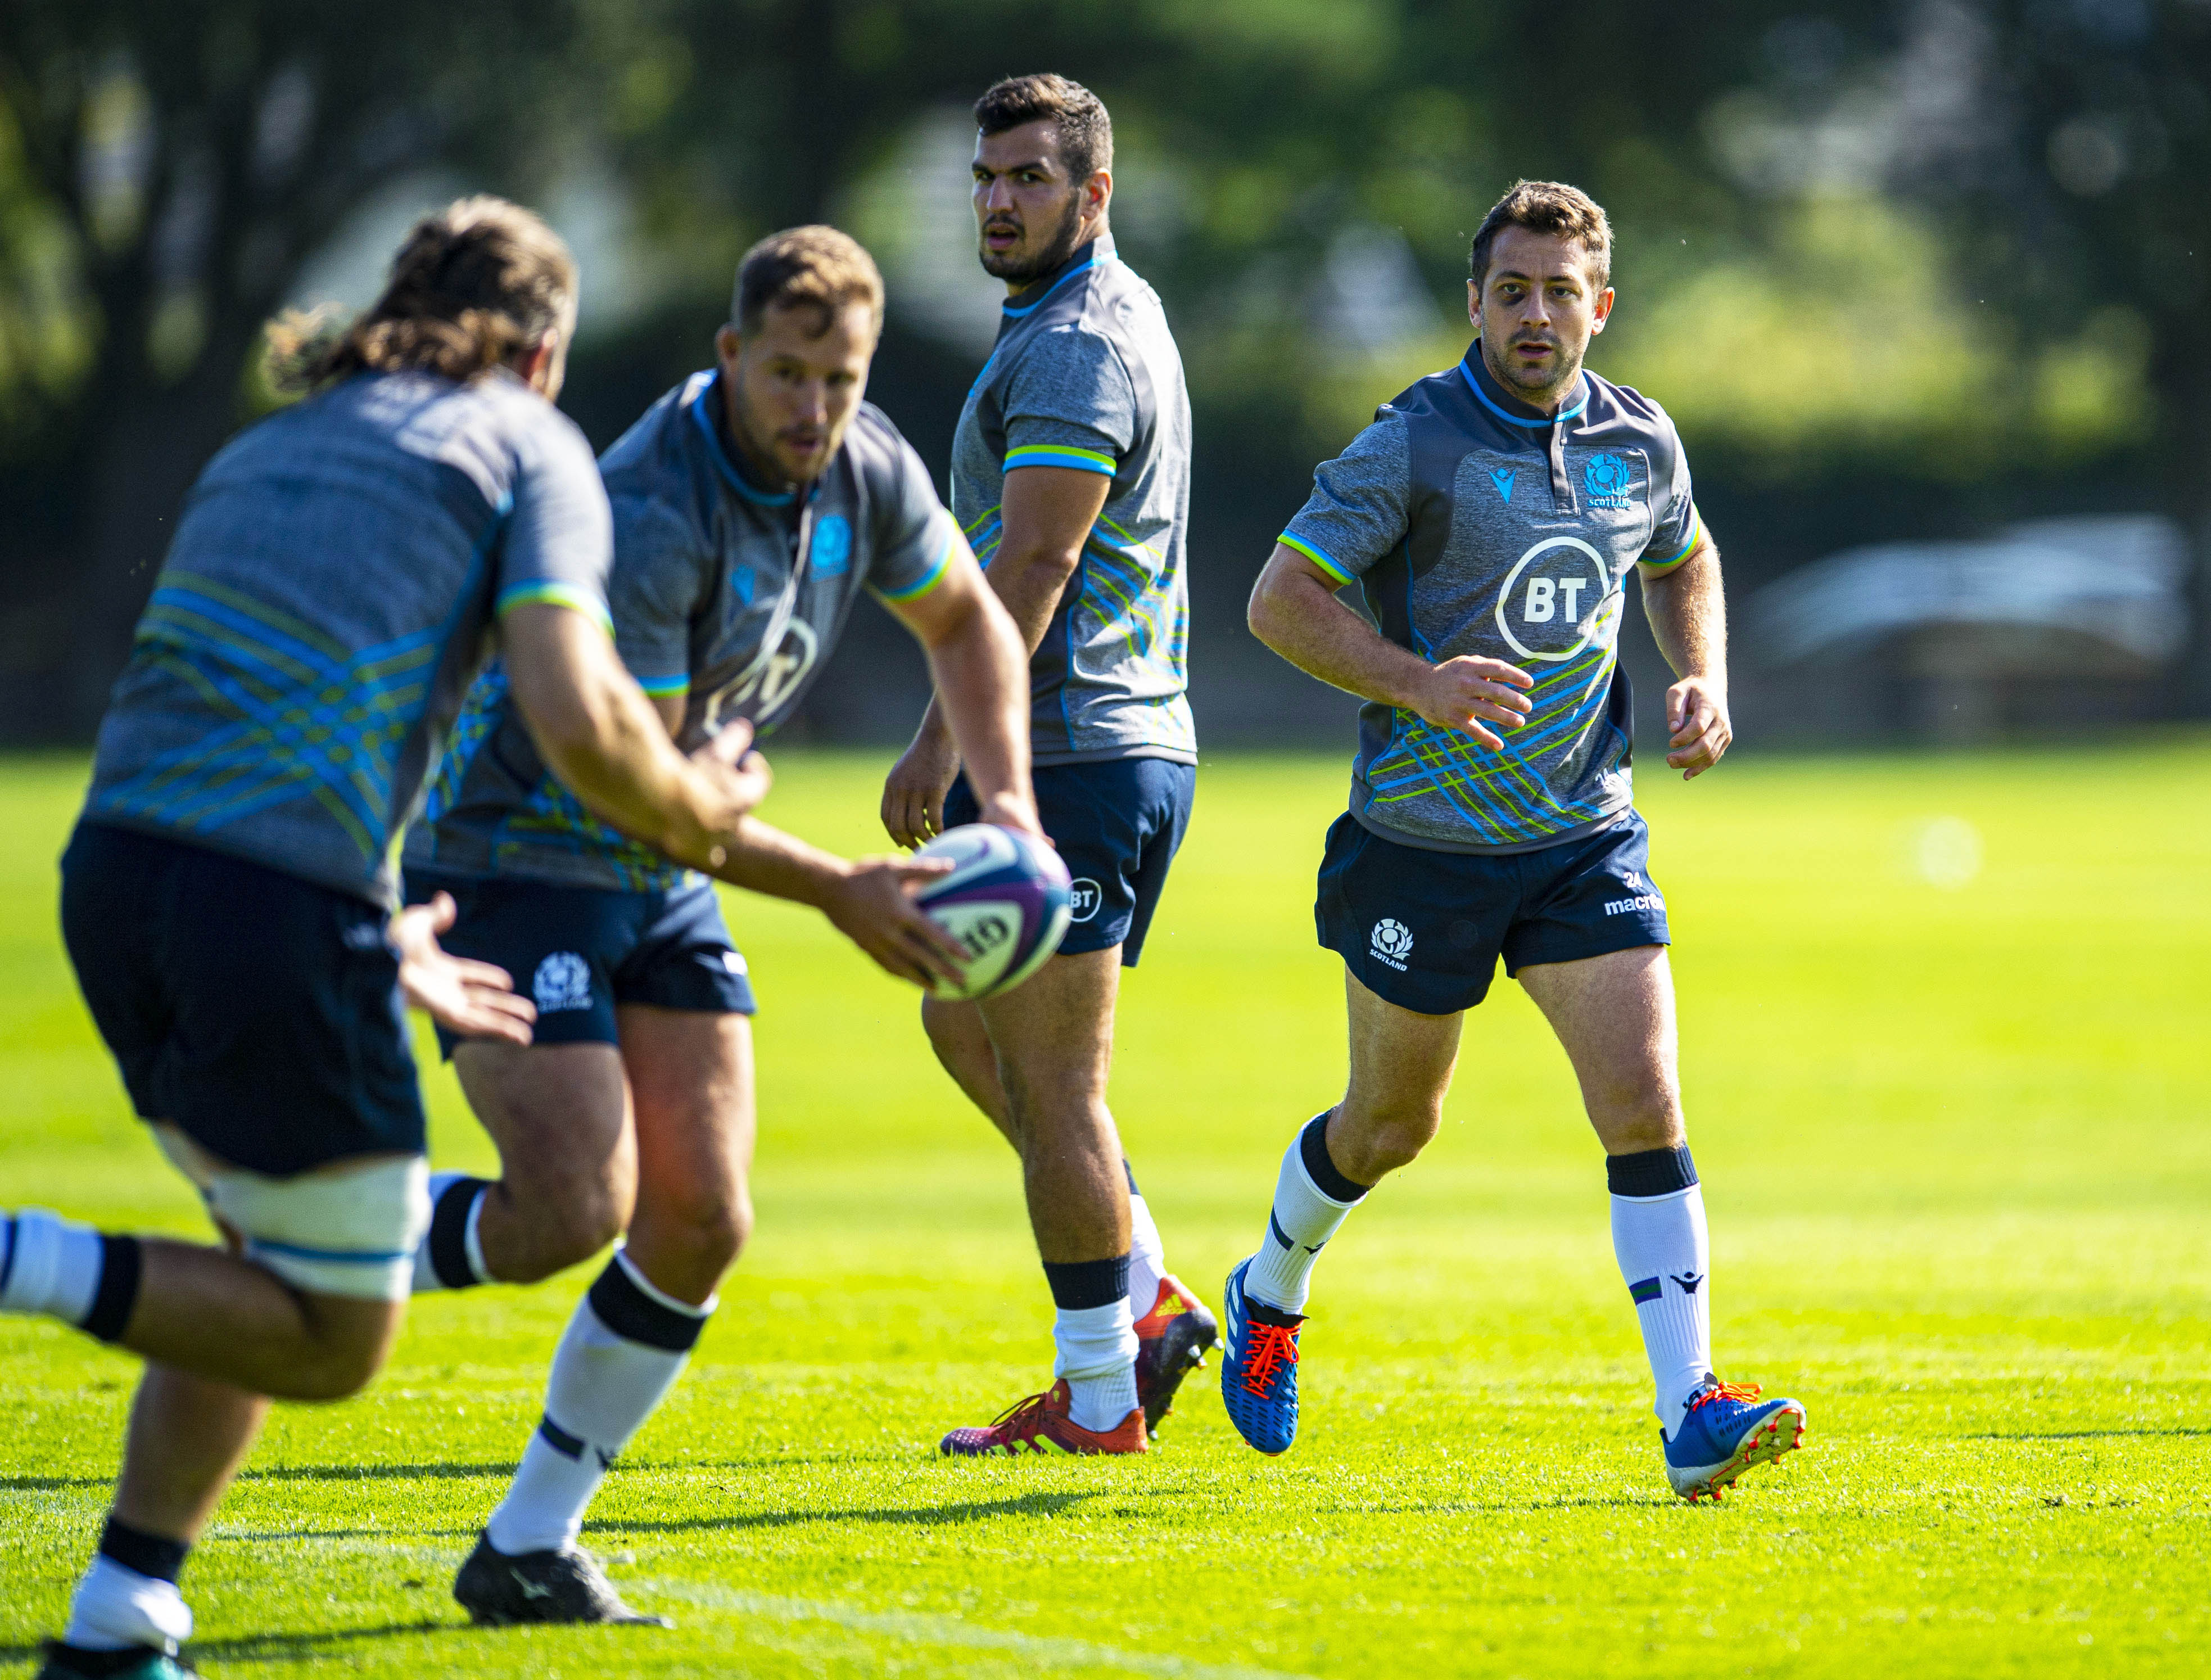 Scotland's Greig Laidlaw in action.